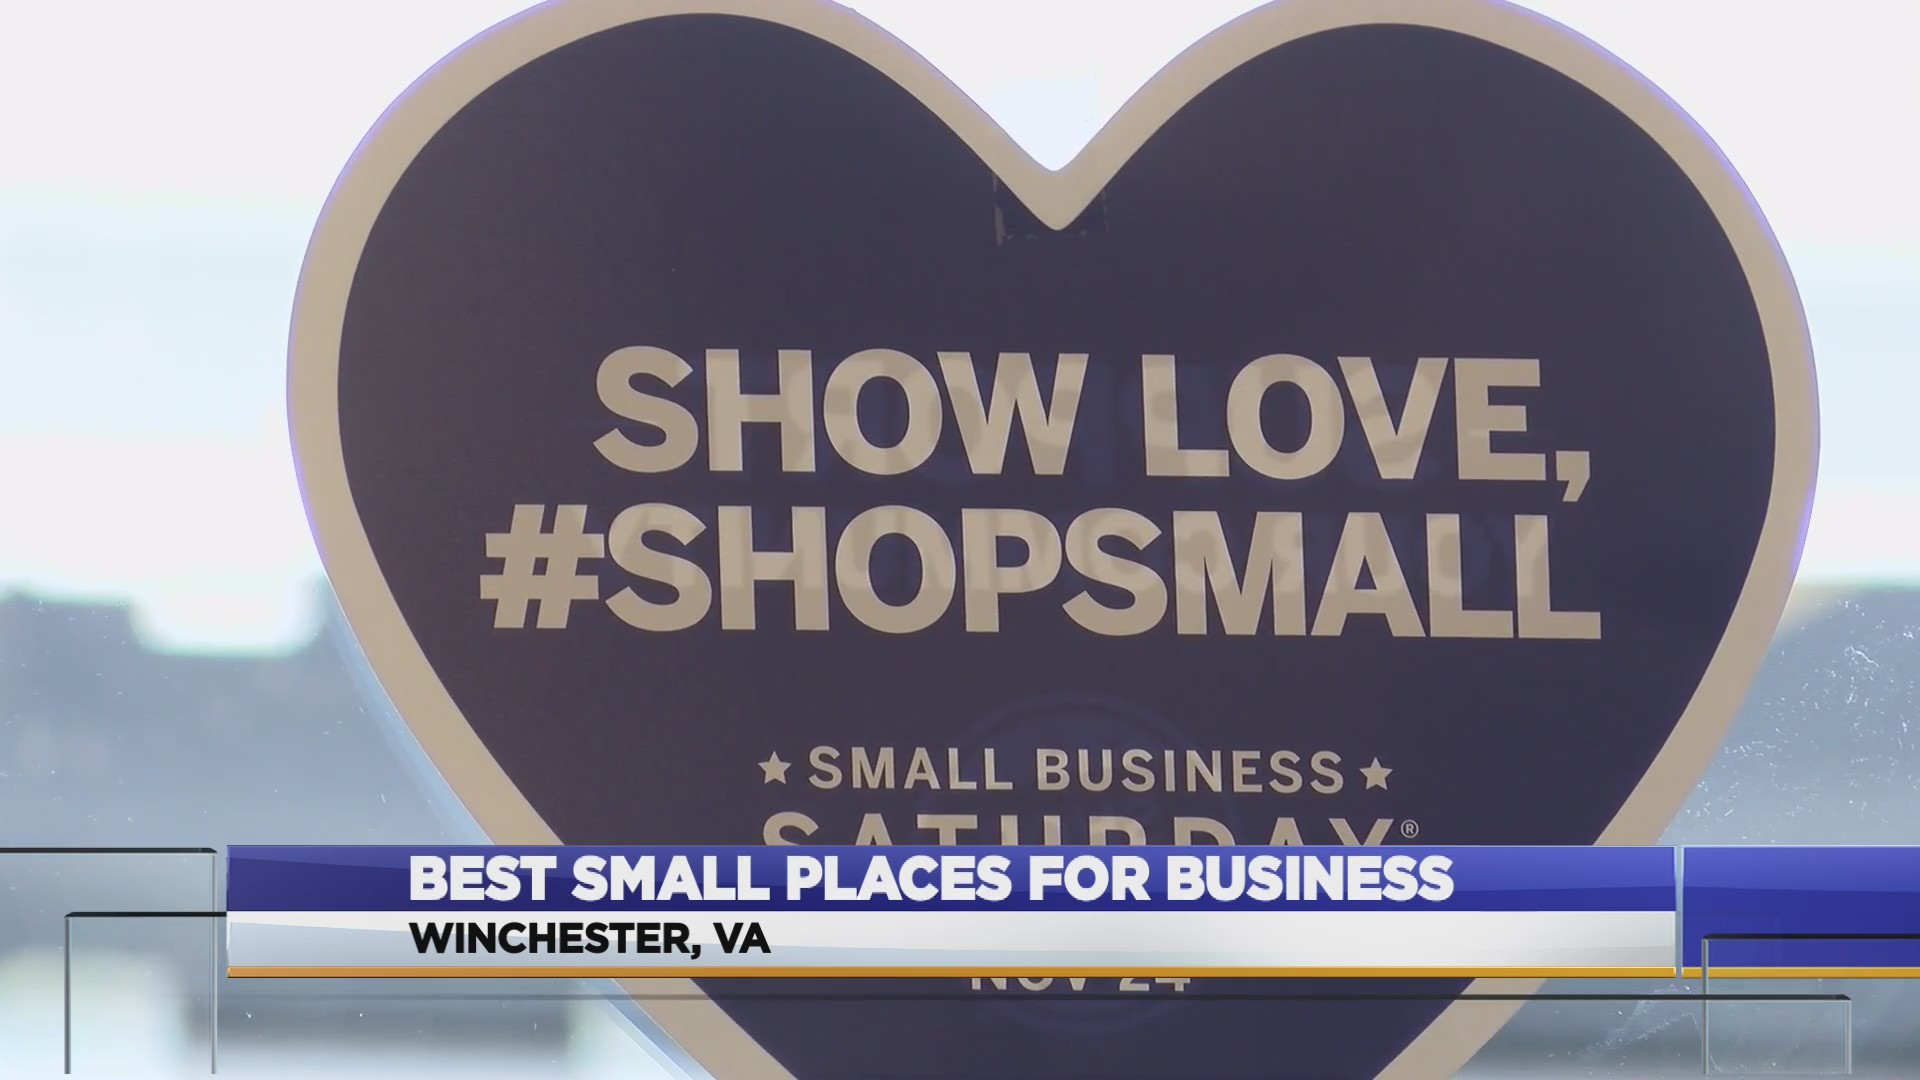 WINCHESTER_SMALL_BUSINESS_0_20190106235117